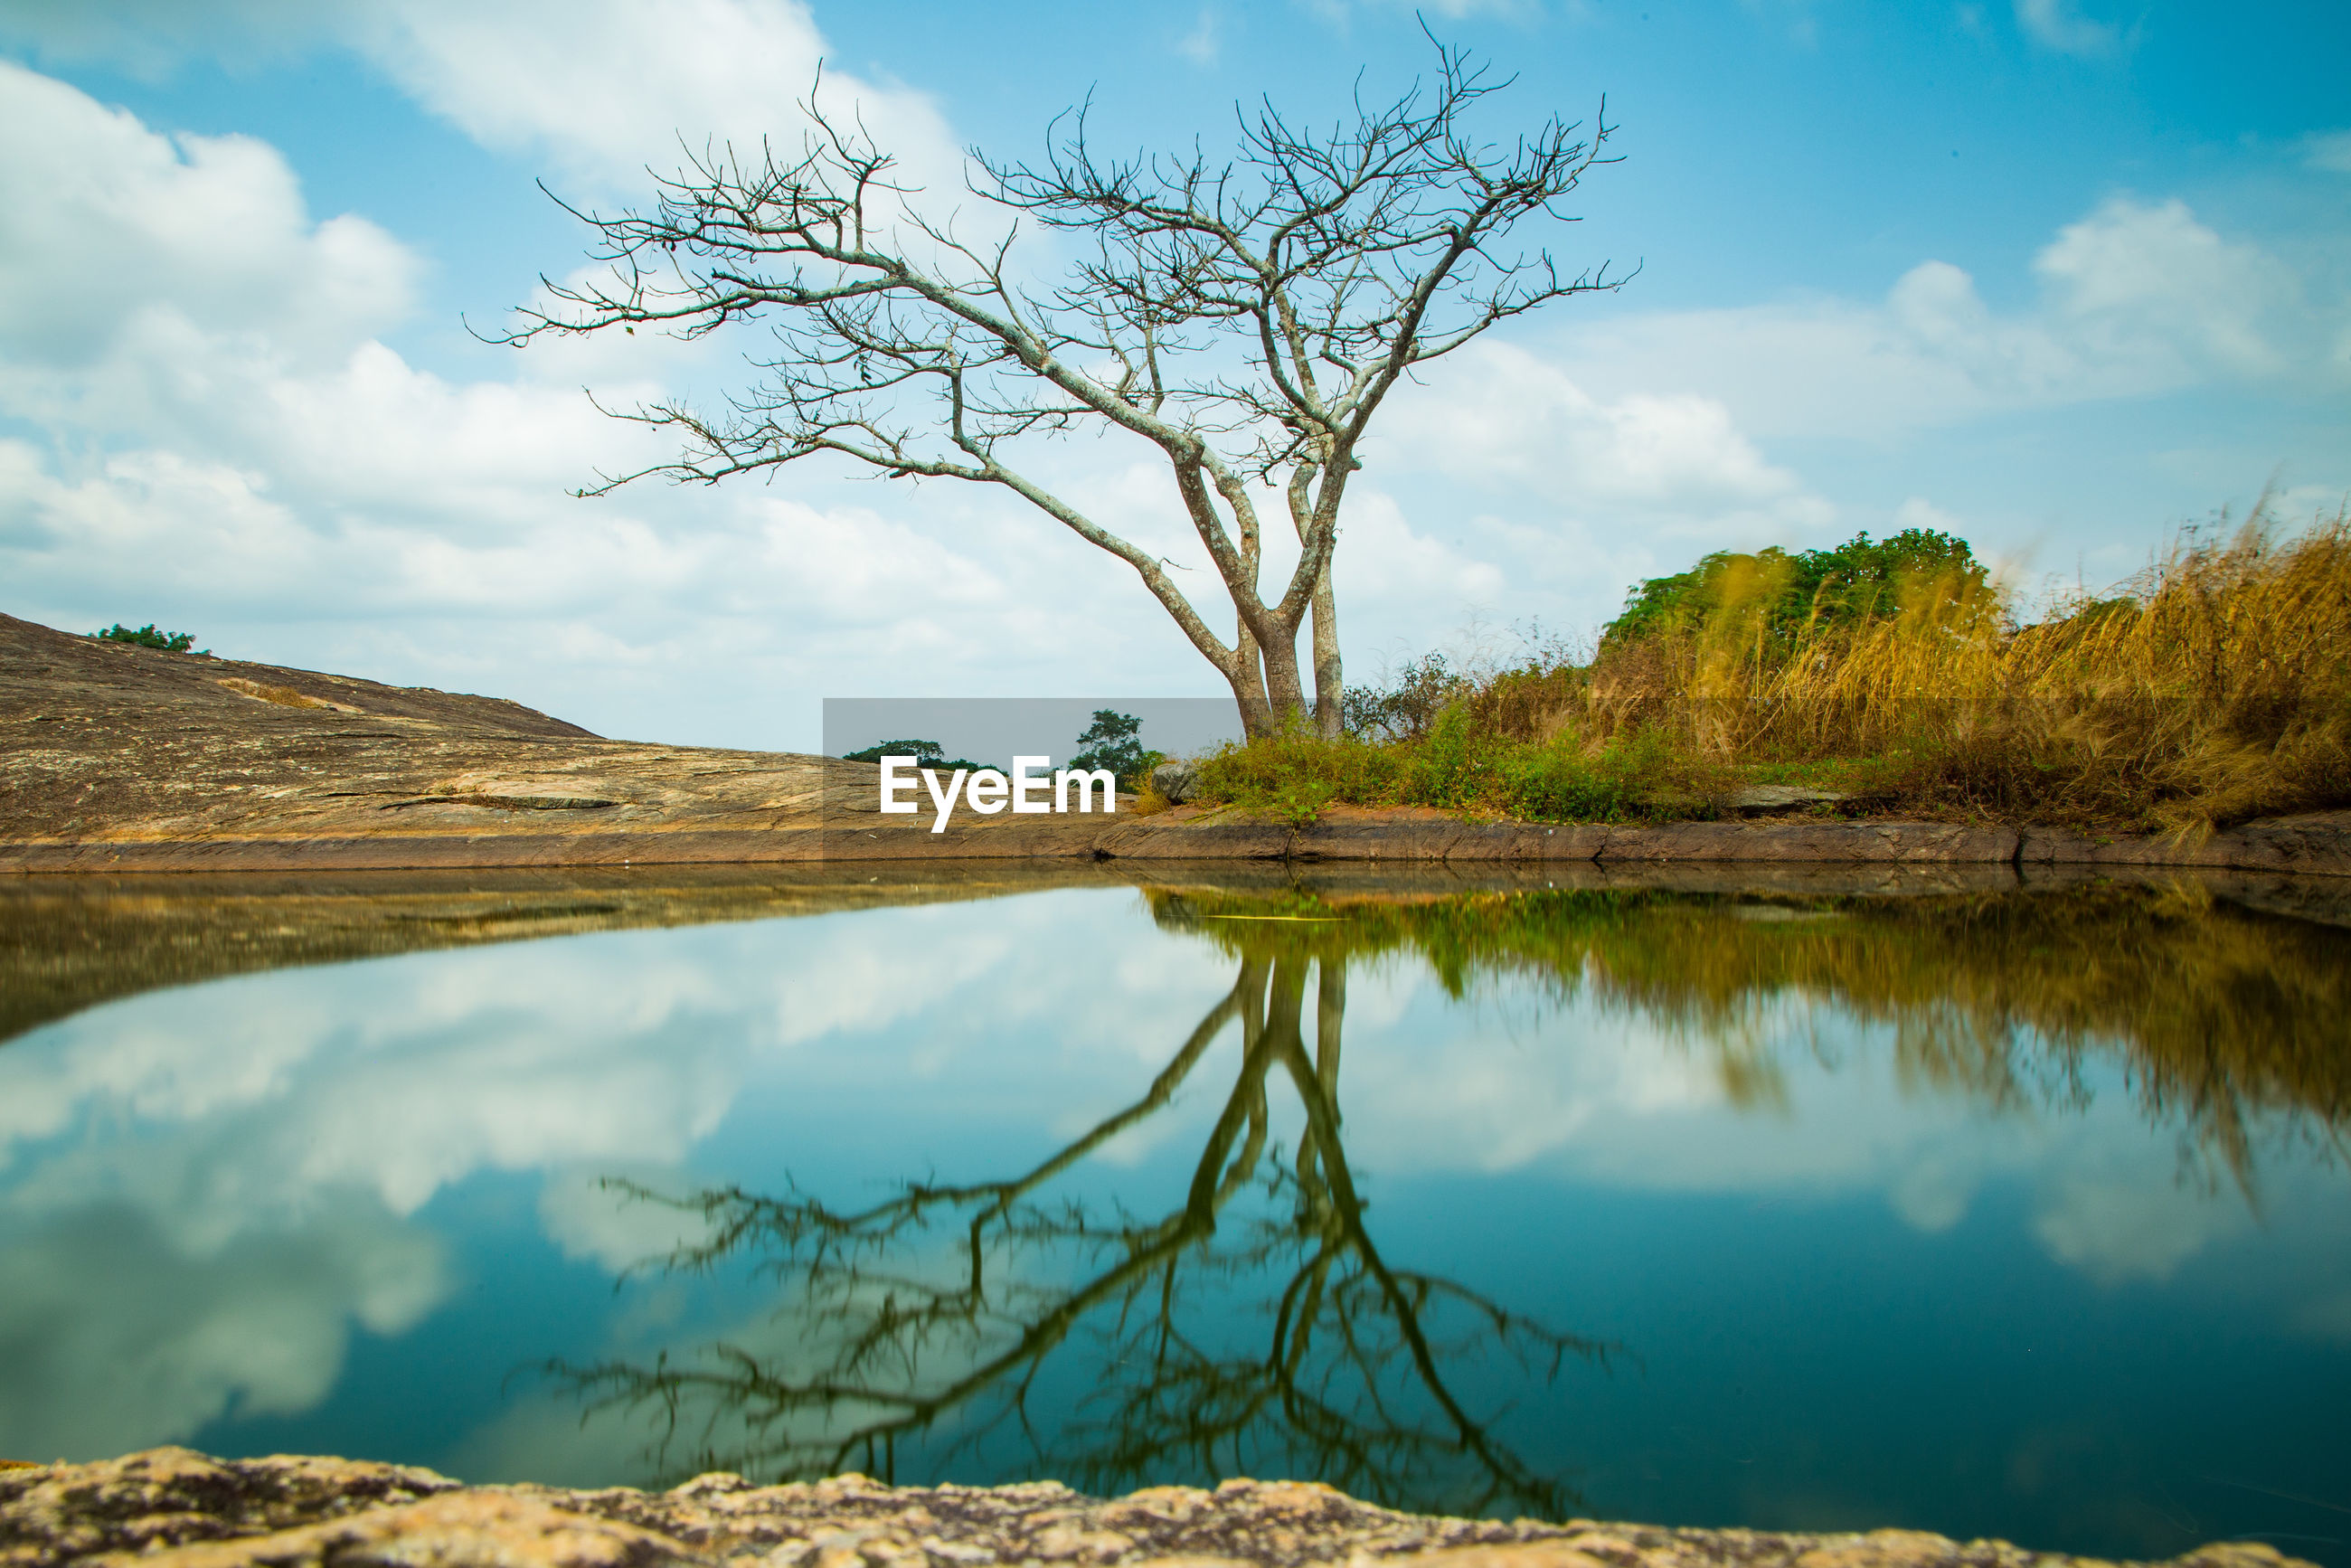 SCENIC VIEW OF LAKE BY TREE AGAINST SKY